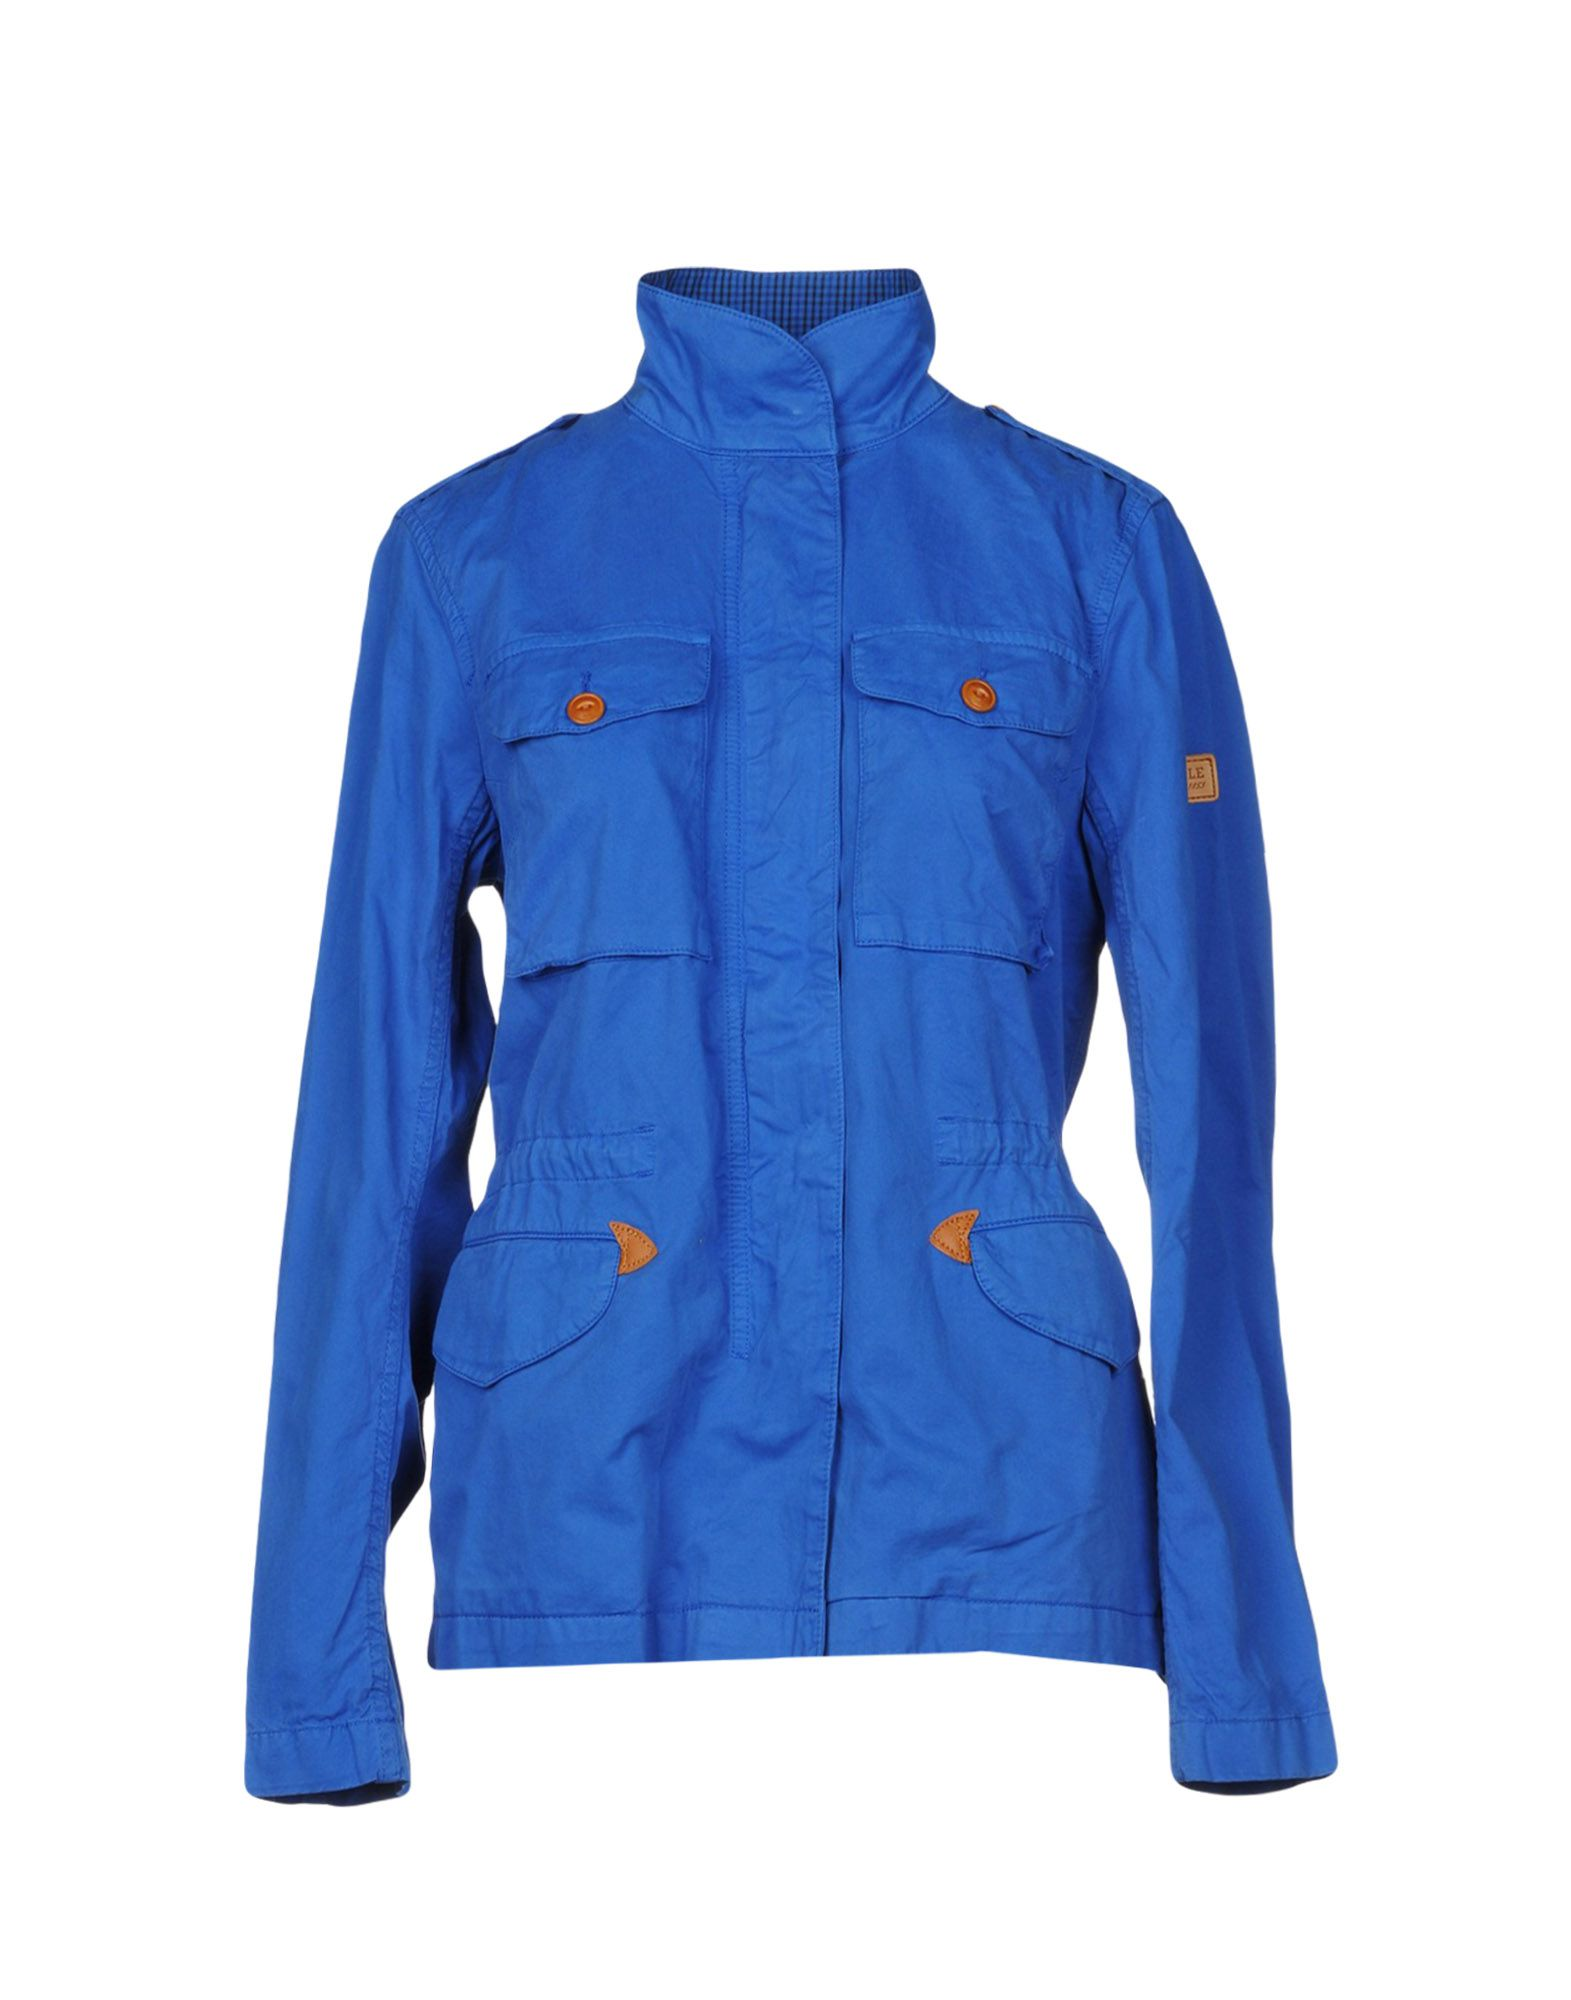 AIGLE Jacket in Bright Blue